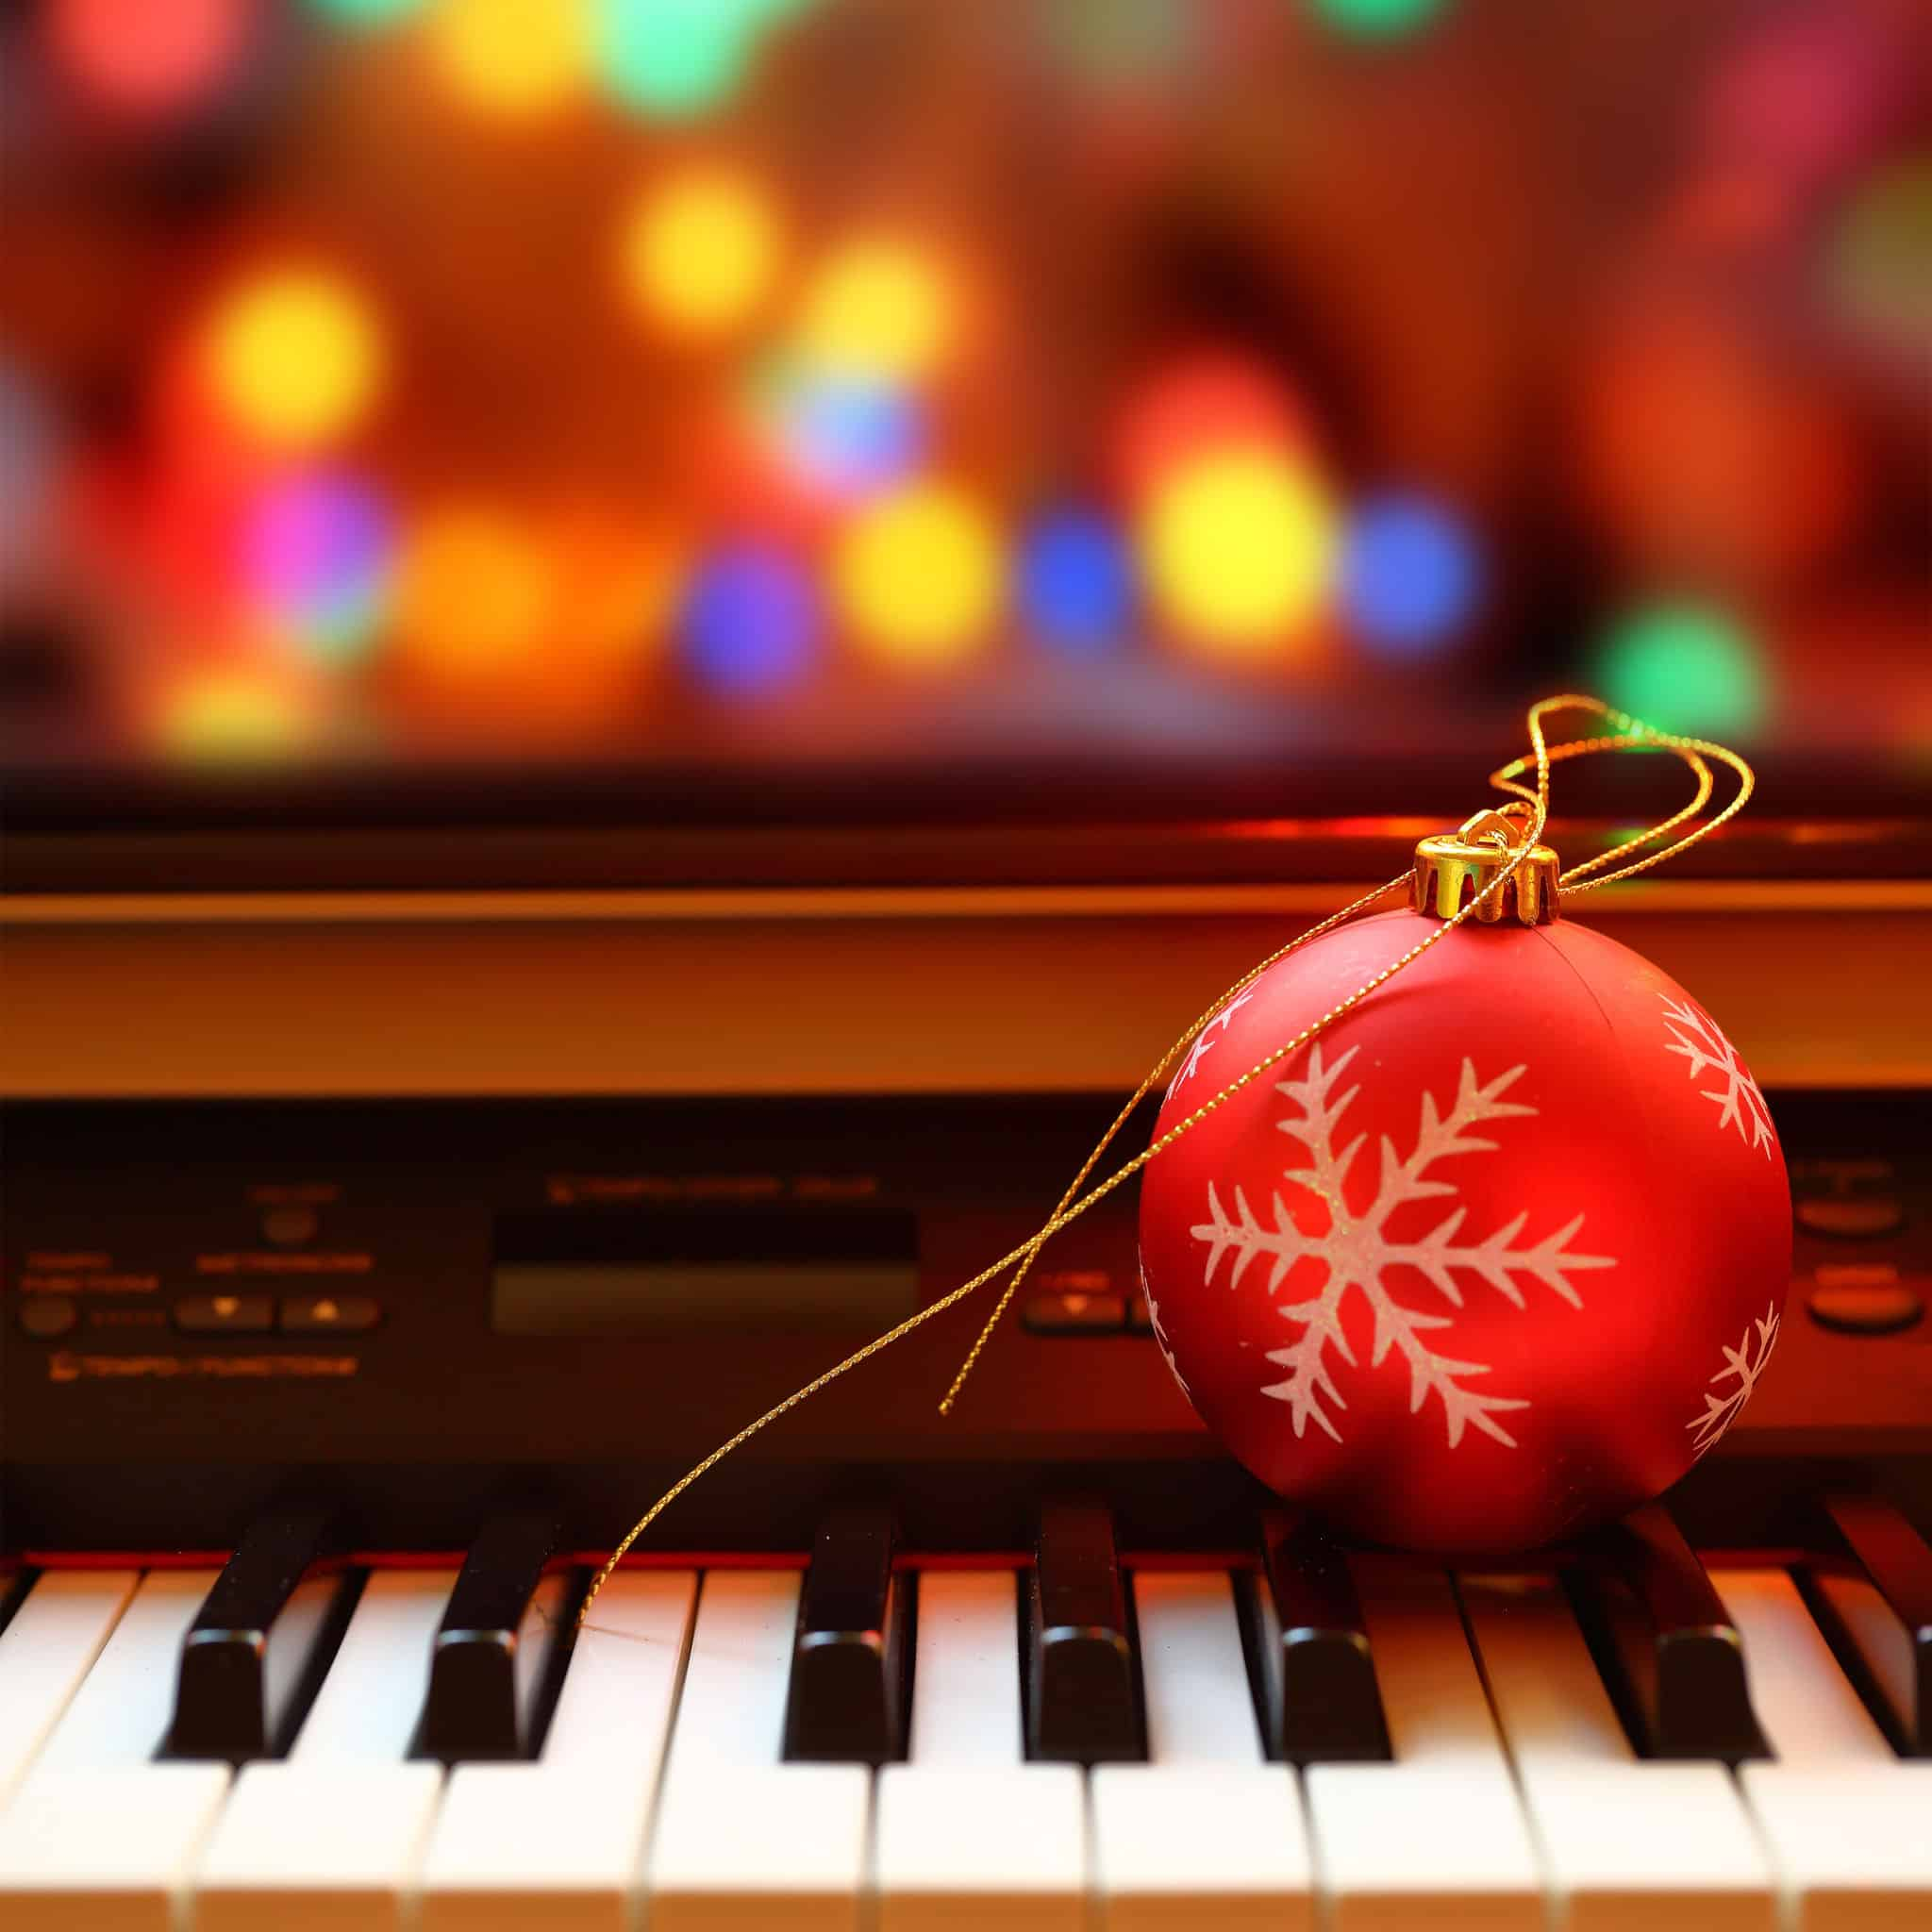 33267778 - christmas ball on piano keys